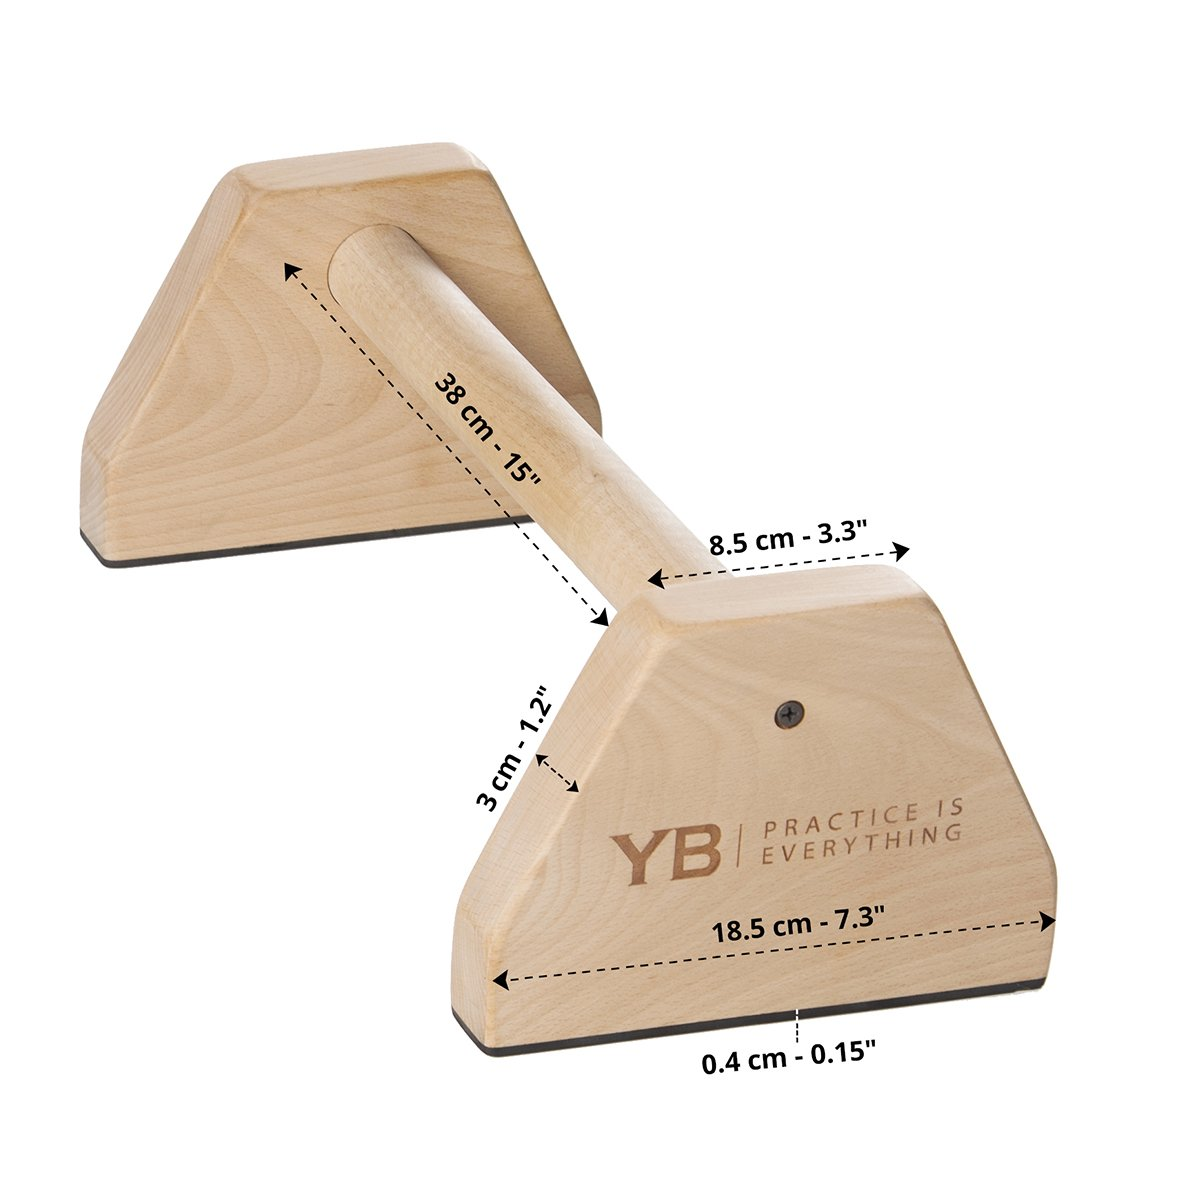 YOGABODY Birch Wood Parallettes (Set of 2)   Beautiful, Smooth, Non-Slip Yoga & Gymnastic Training Tool for L-Sits, Lolasana, Handstand Pushups, Jump Backs & More by YOGABODY (Image #3)